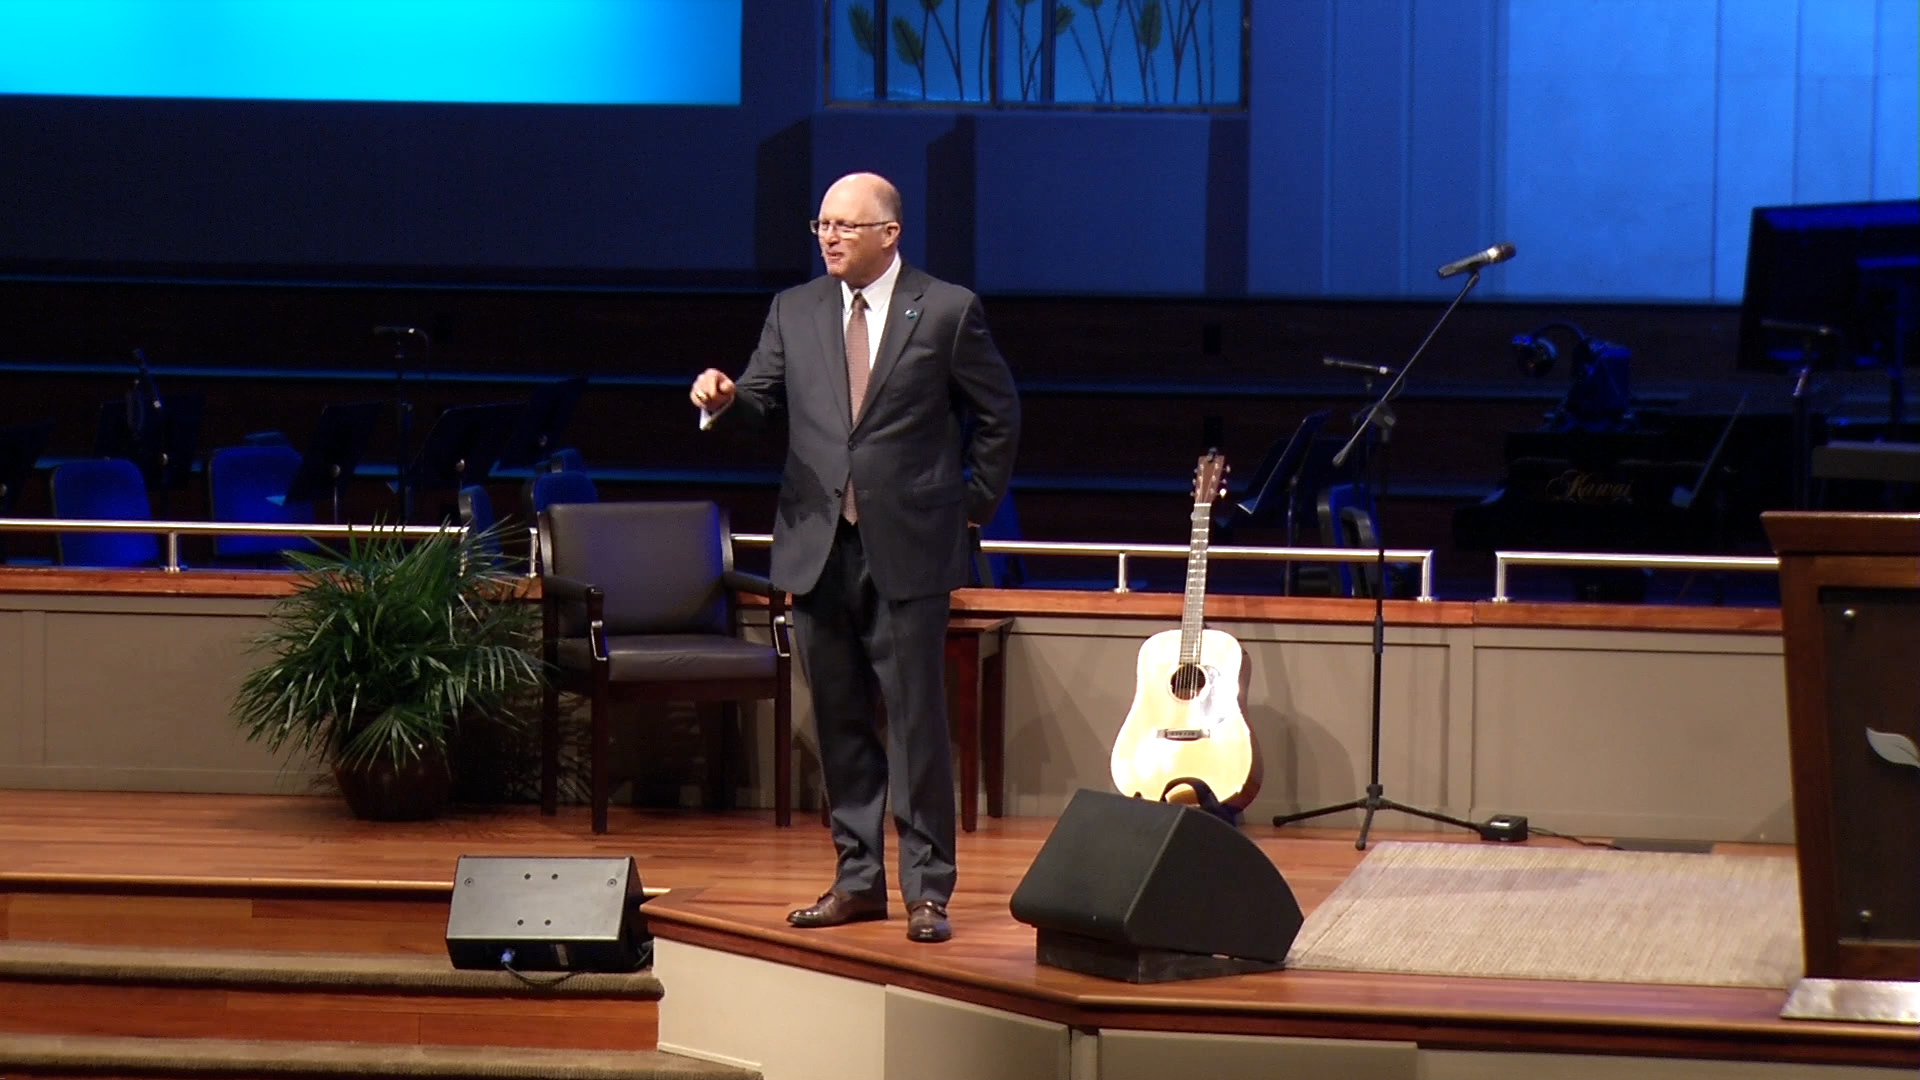 Pastor Paul Chappell: Reaching Forth In Stewardship